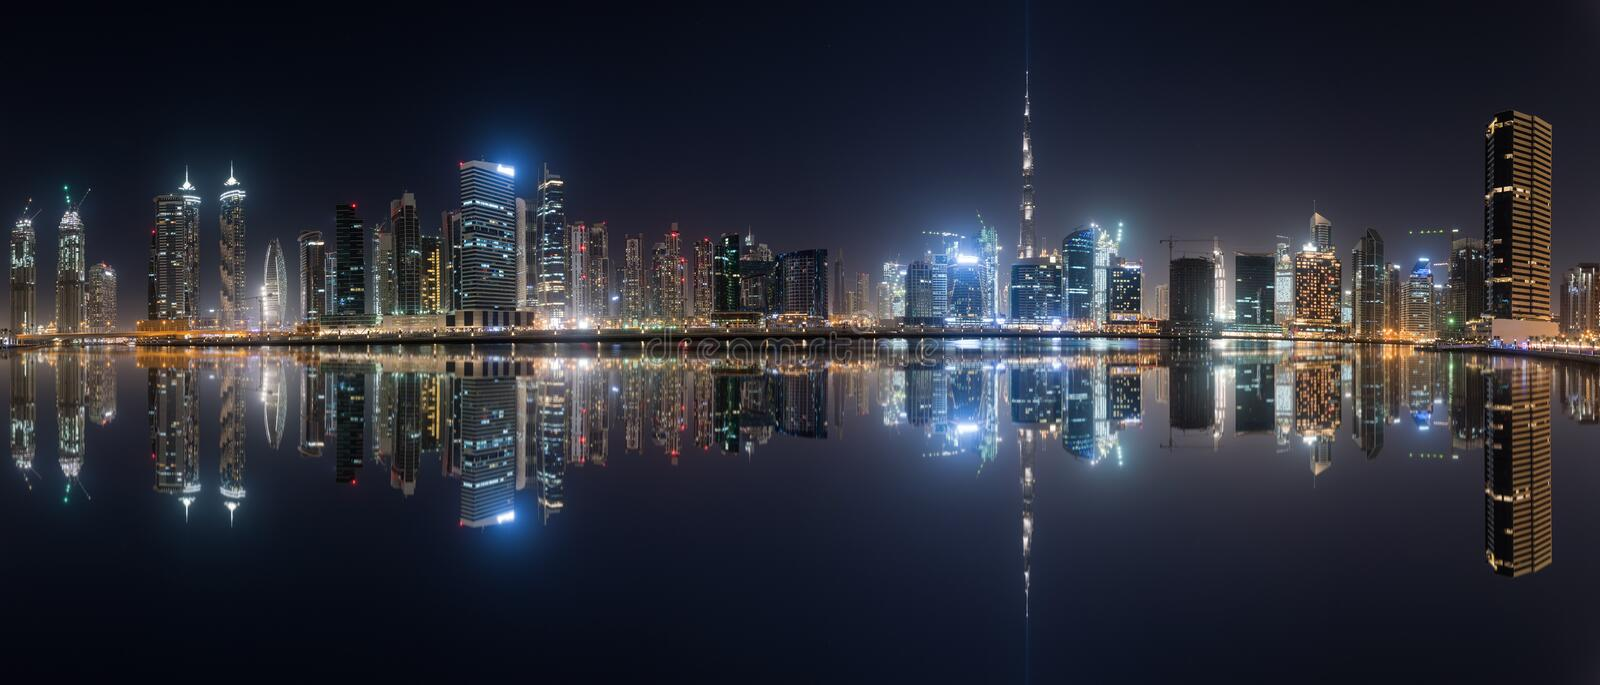 Business bay skyline with reflection in the water at night, Dubai, UAE royalty free stock images